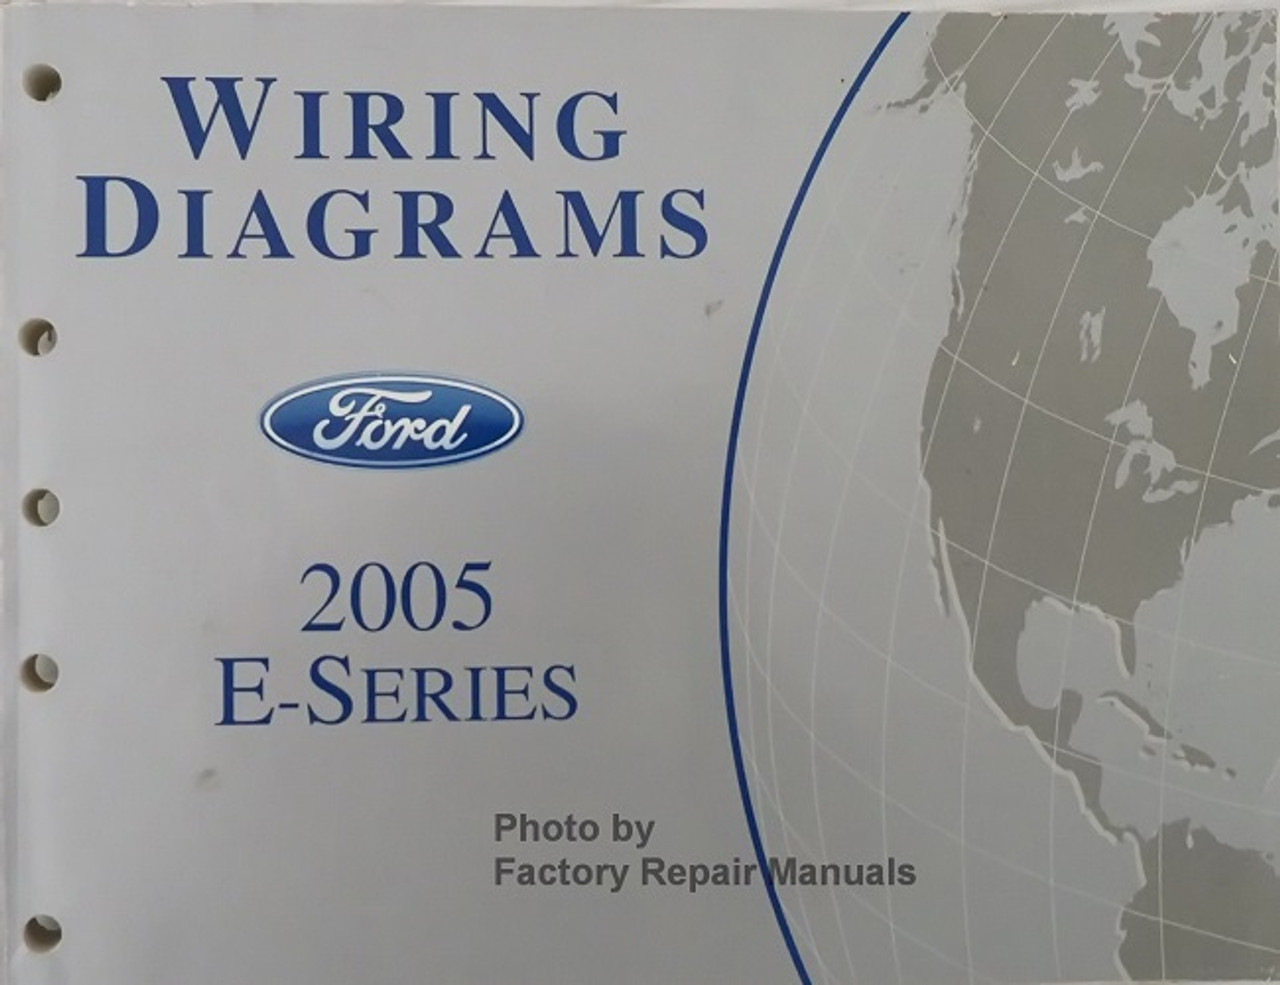 Ford Econoline E350 Blower Wiring Schematic   Wiring Diagram on ford air conditioning wiring diagram, ford neutral safety switch wiring diagram, ford ballast resistor wiring diagram, ford transfer case wiring diagram, ford expedition wiring-diagram, ford rear view mirror wiring diagram, ford 02 sensor wiring diagram, ford windshield wiper motor wiring diagram, ford f-250 air conditioning diagram, ford abs system wiring diagram, ford oxygen sensor wiring diagram, ford power mirror switch wiring diagram, ford dome light wiring diagram, ford blower motor relay location, ford instrument cluster wiring diagram, ford ranger blower motor resistor location, ford mass air flow sensor wiring diagram, ford 7 pronge wiring-diagram, ford fuel gauge wiring diagram, ford blower motor resistor harness connector,